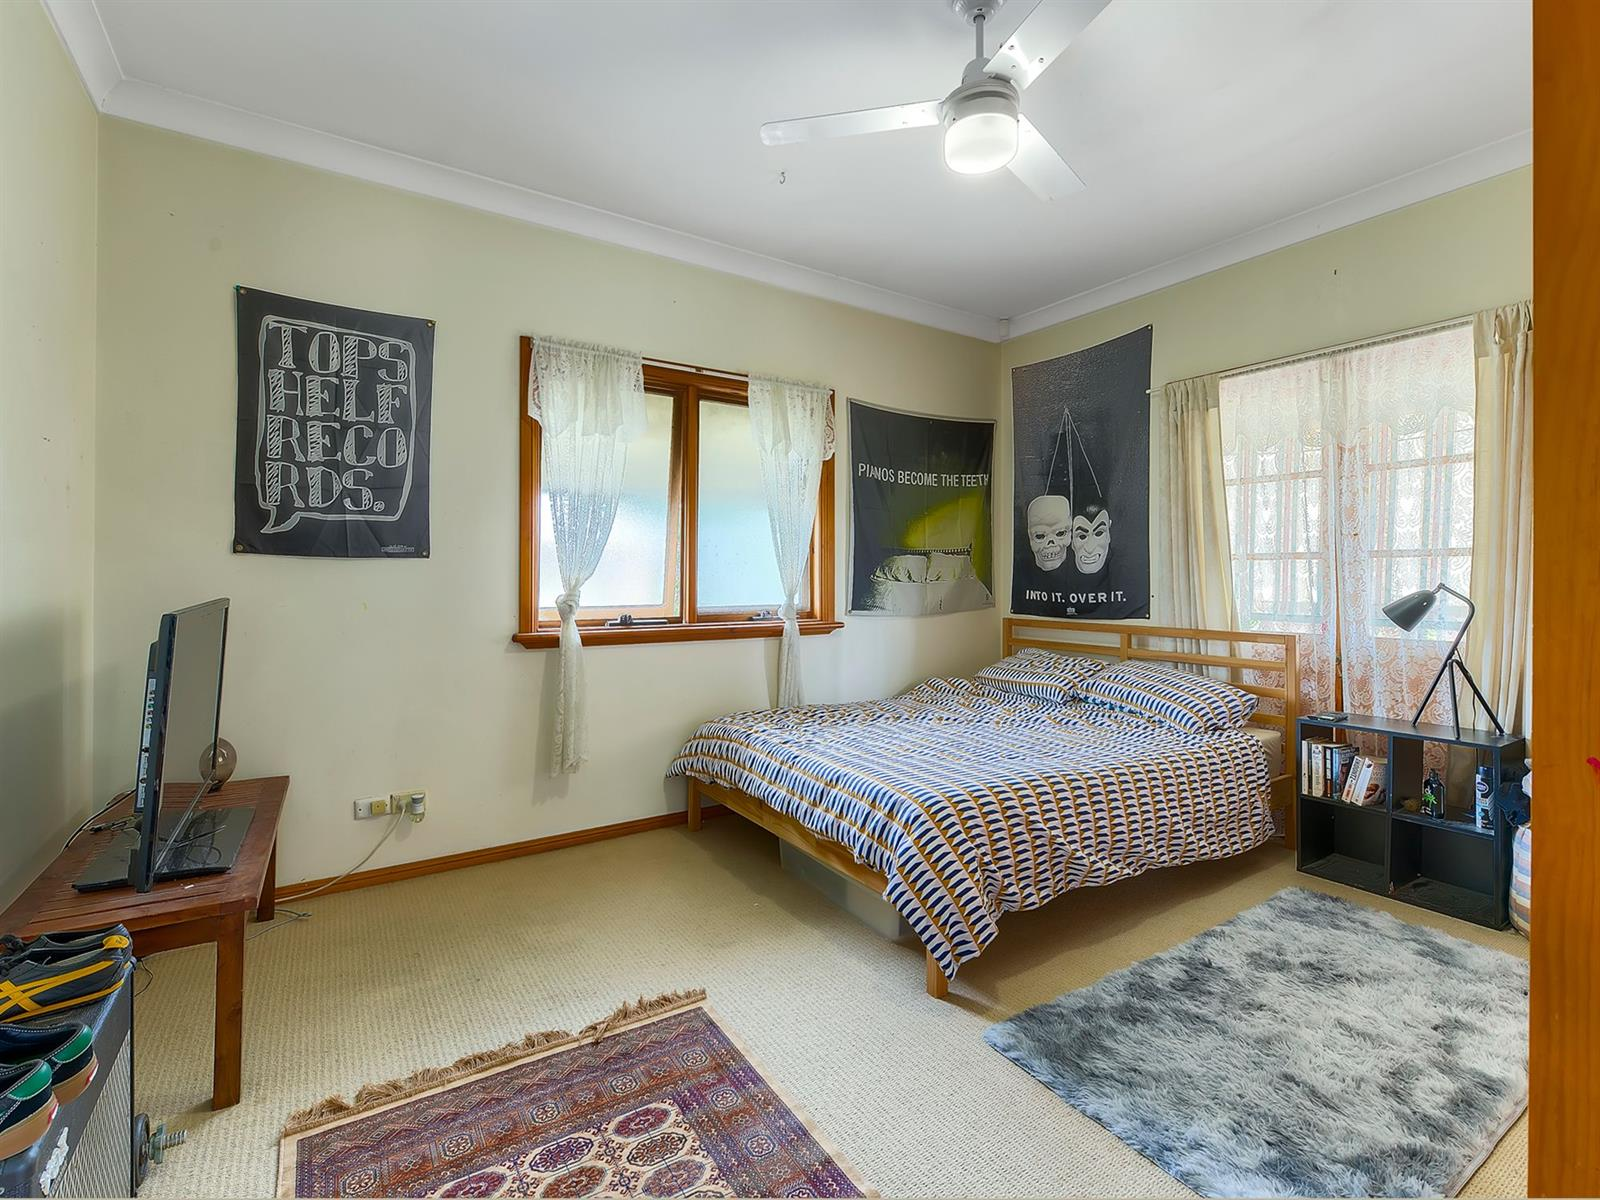 81 Orange Grove Rd COOPERS PLAINS QLD 4108 Image 4